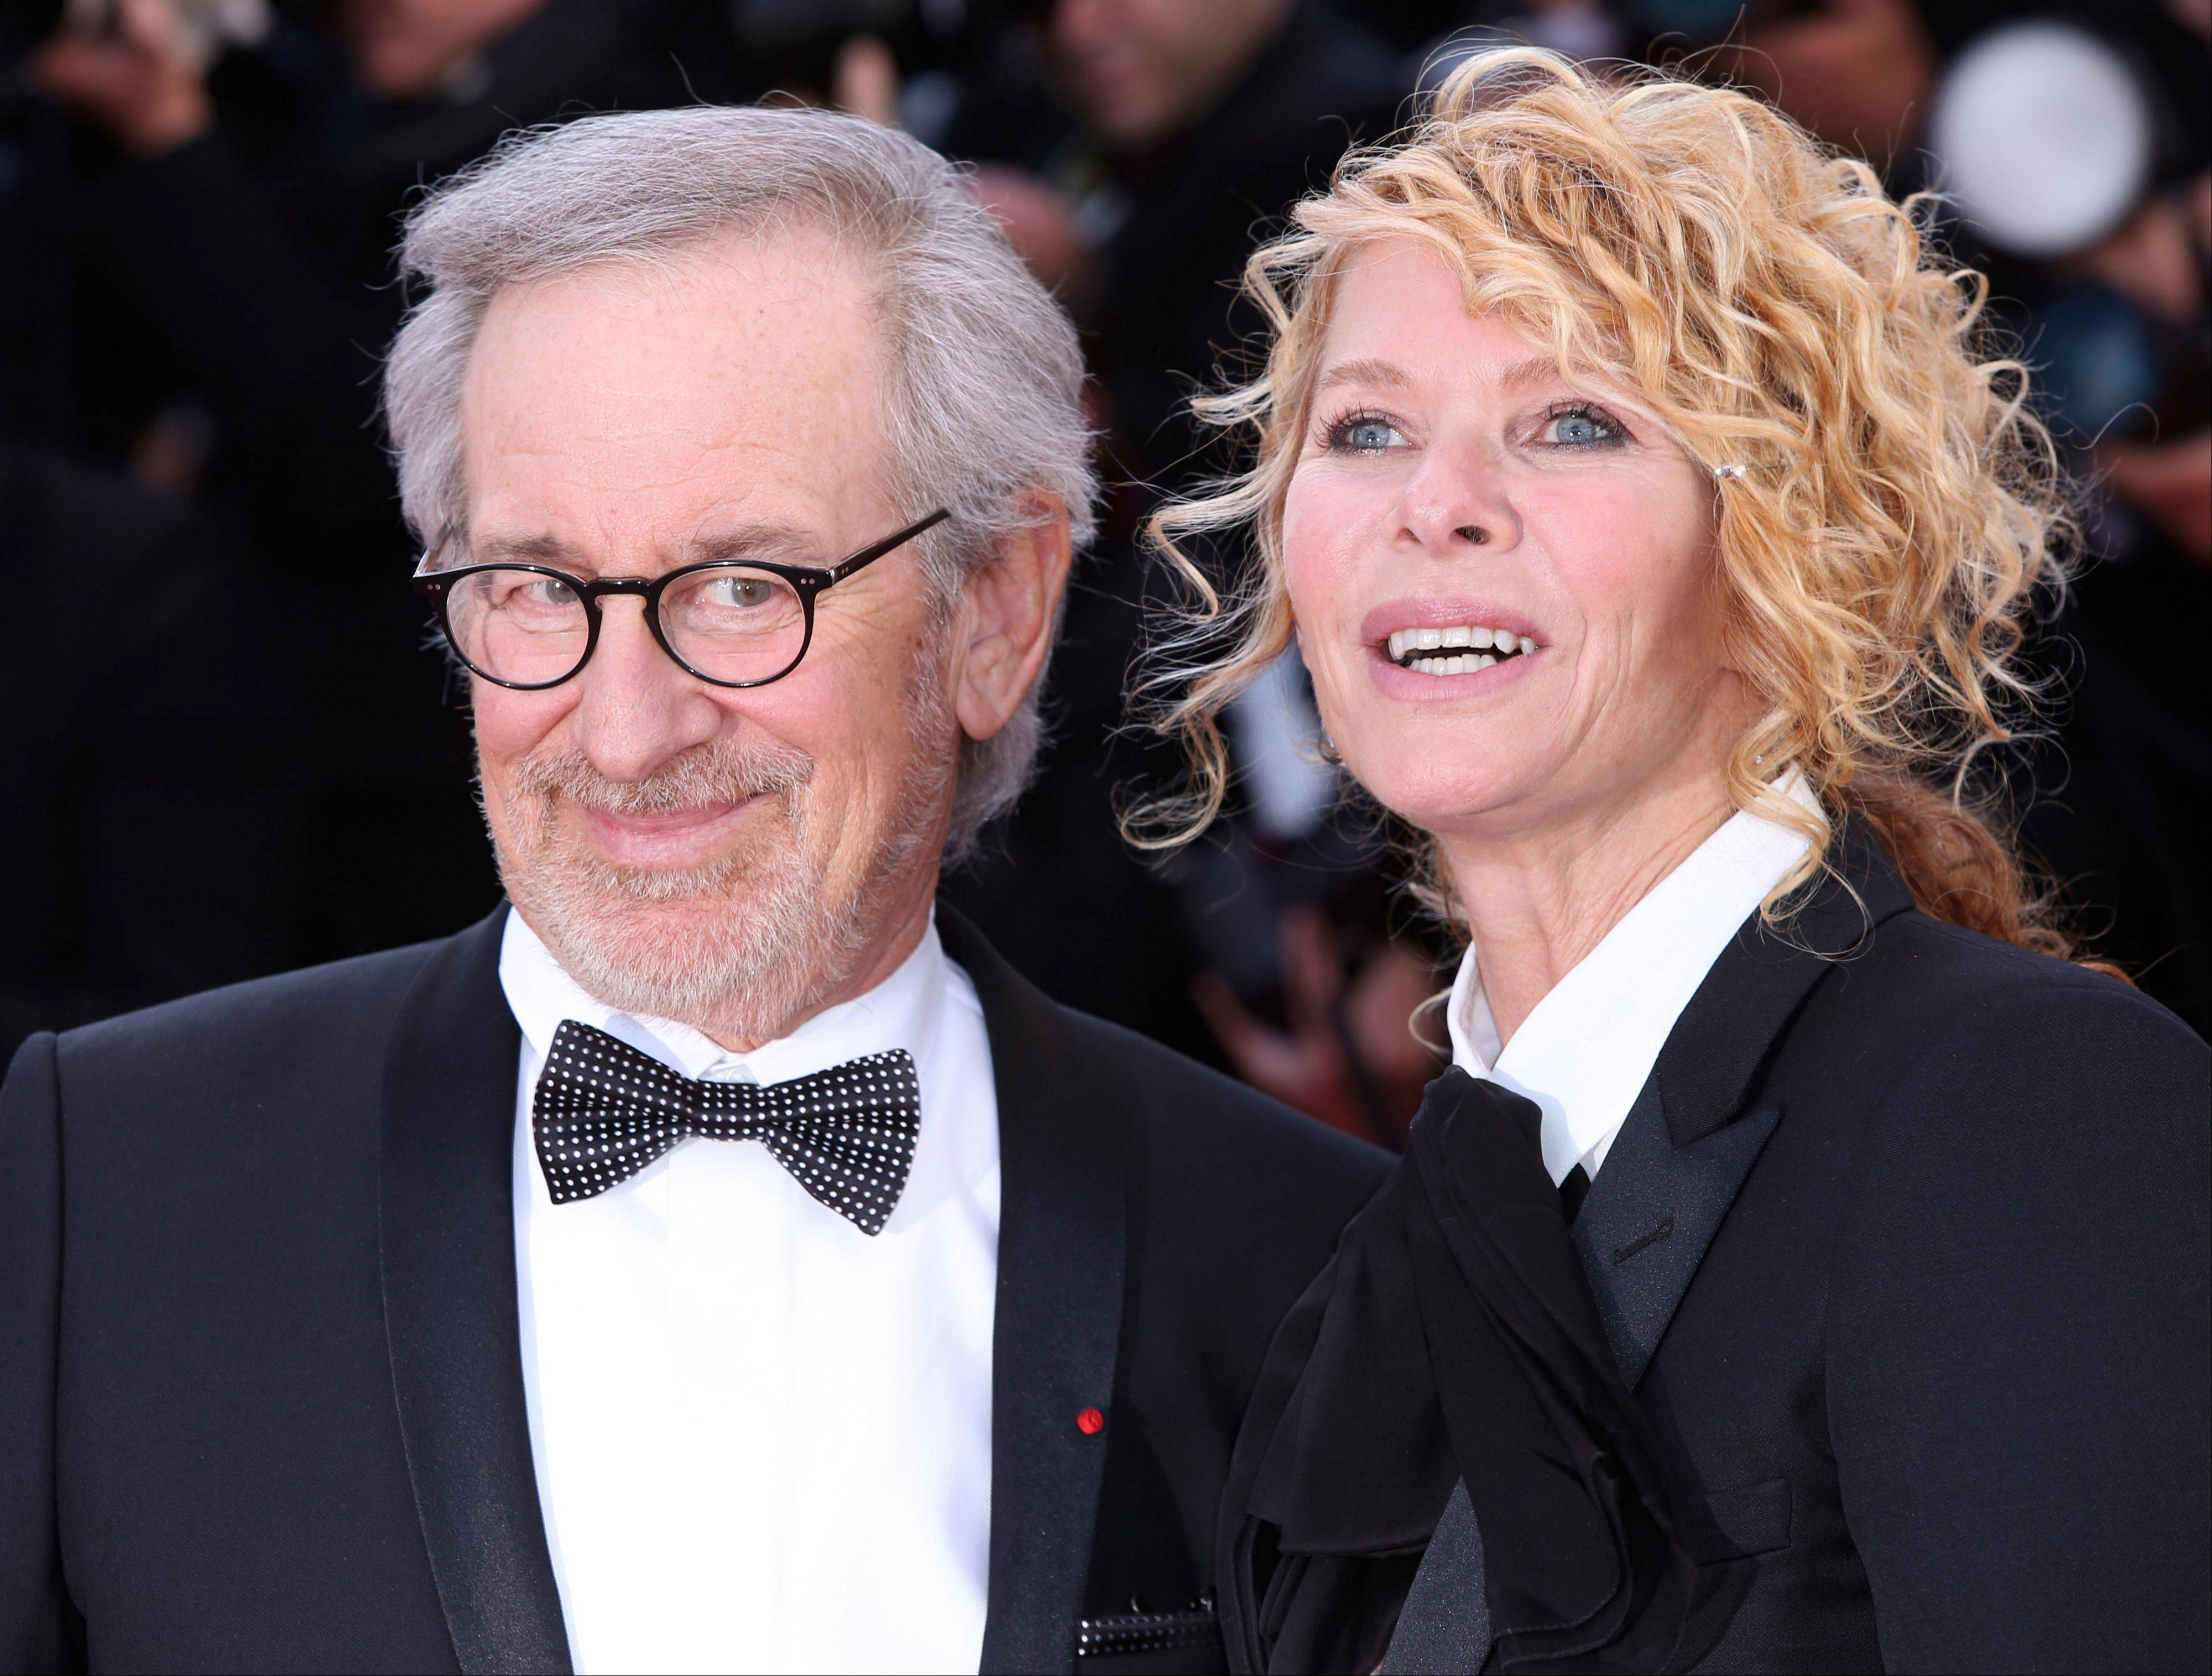 Director Steven Spielberg and Kate Capshaw arrive on the red carpet for the screening of Venus in Fur at the 66th international film festival, in Cannes, southern France, Saturday, May 25, 2013. Spielberg was head of the jury which awarded prizes at the film festival.